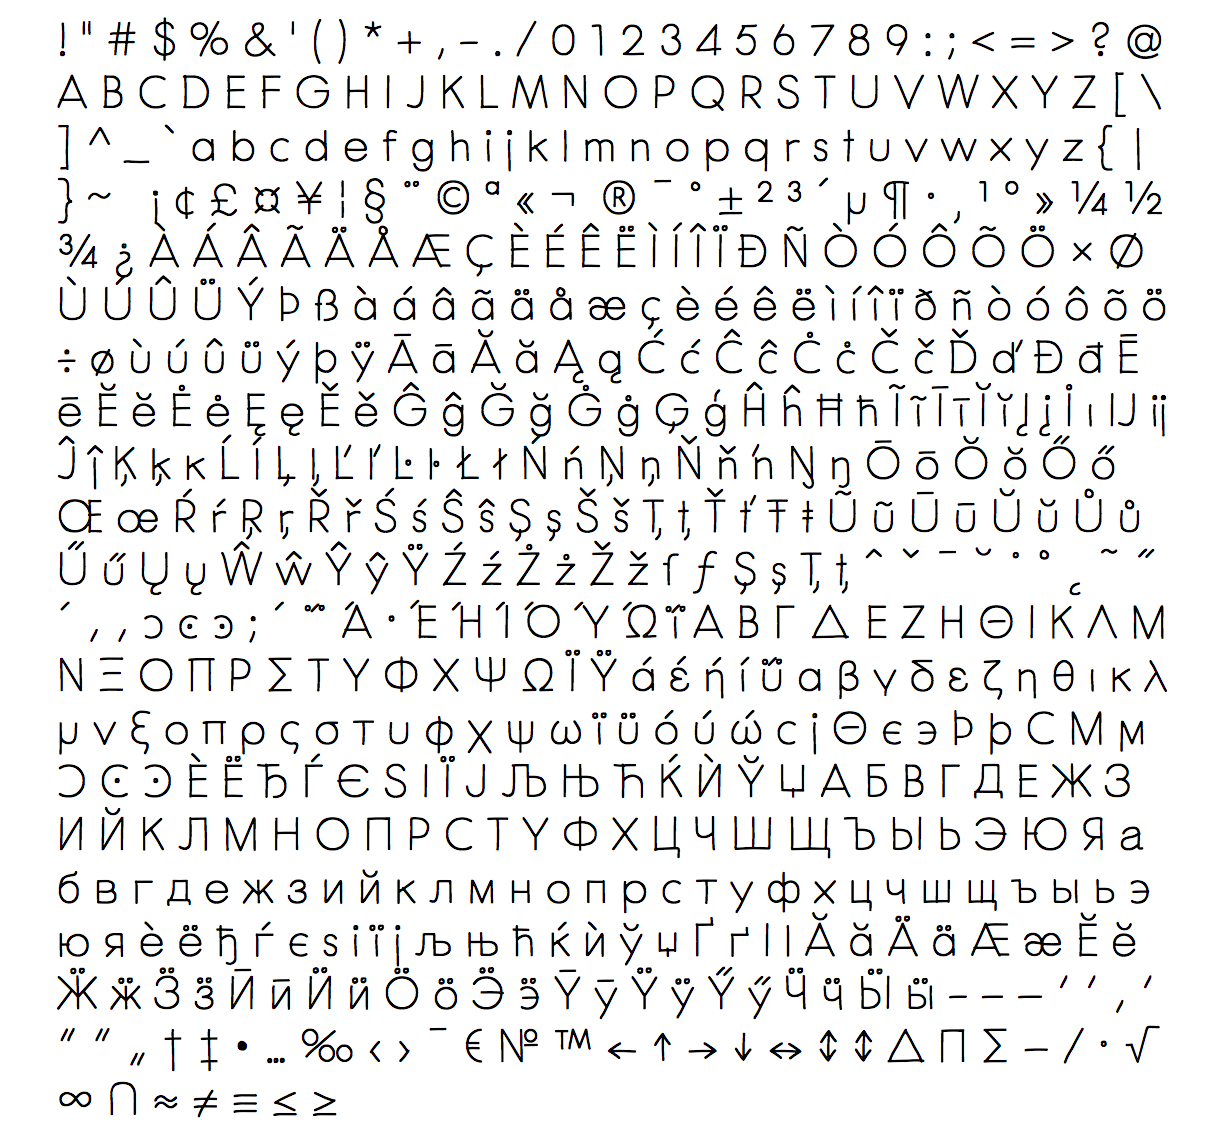 centuraround font - complete character list